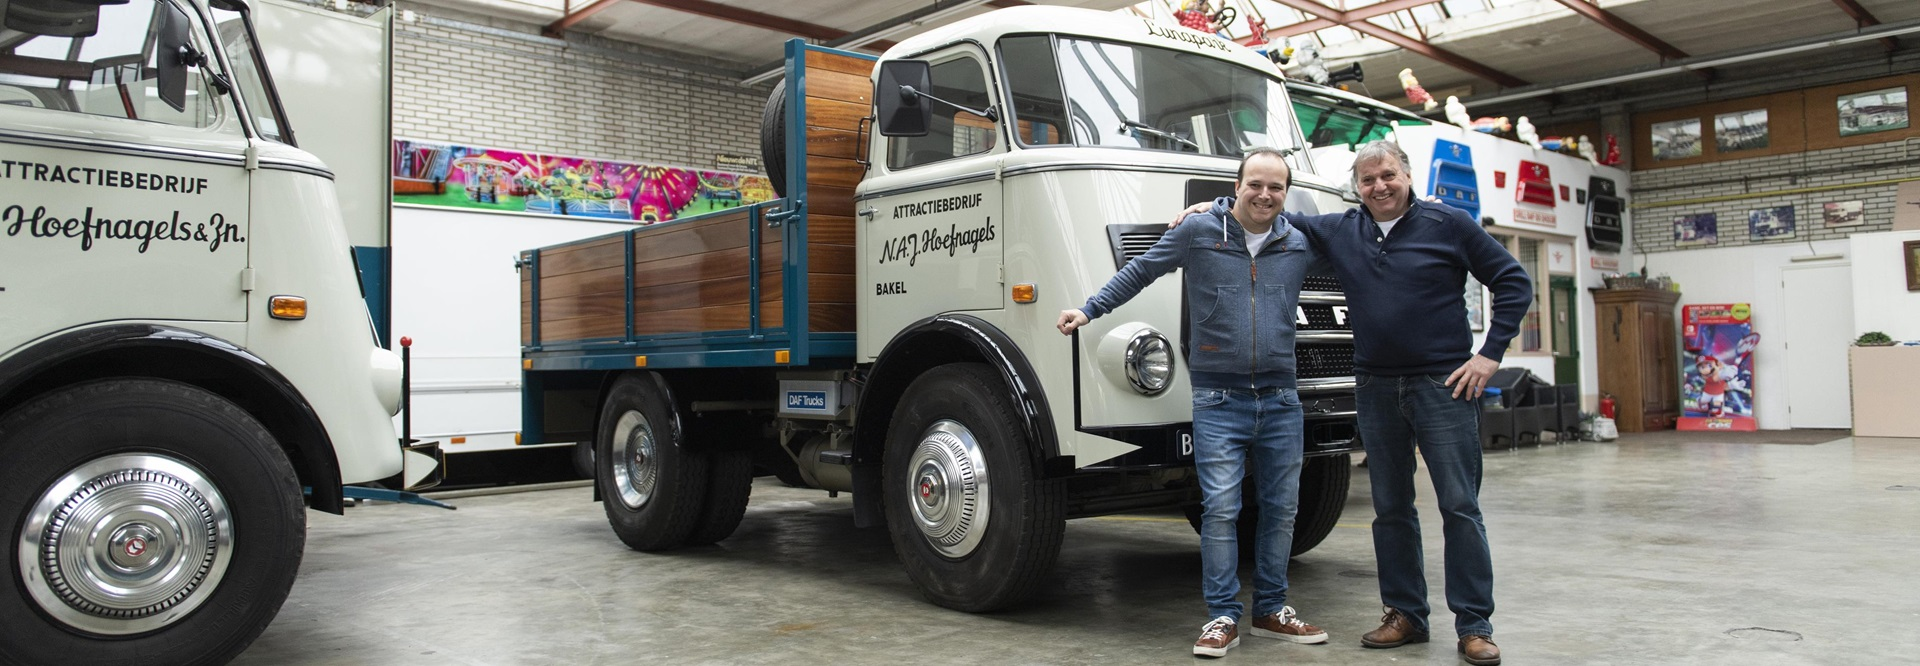 Oldest-DAF-truck-still-in-commercial-Use-DAF-A1600-from-1968